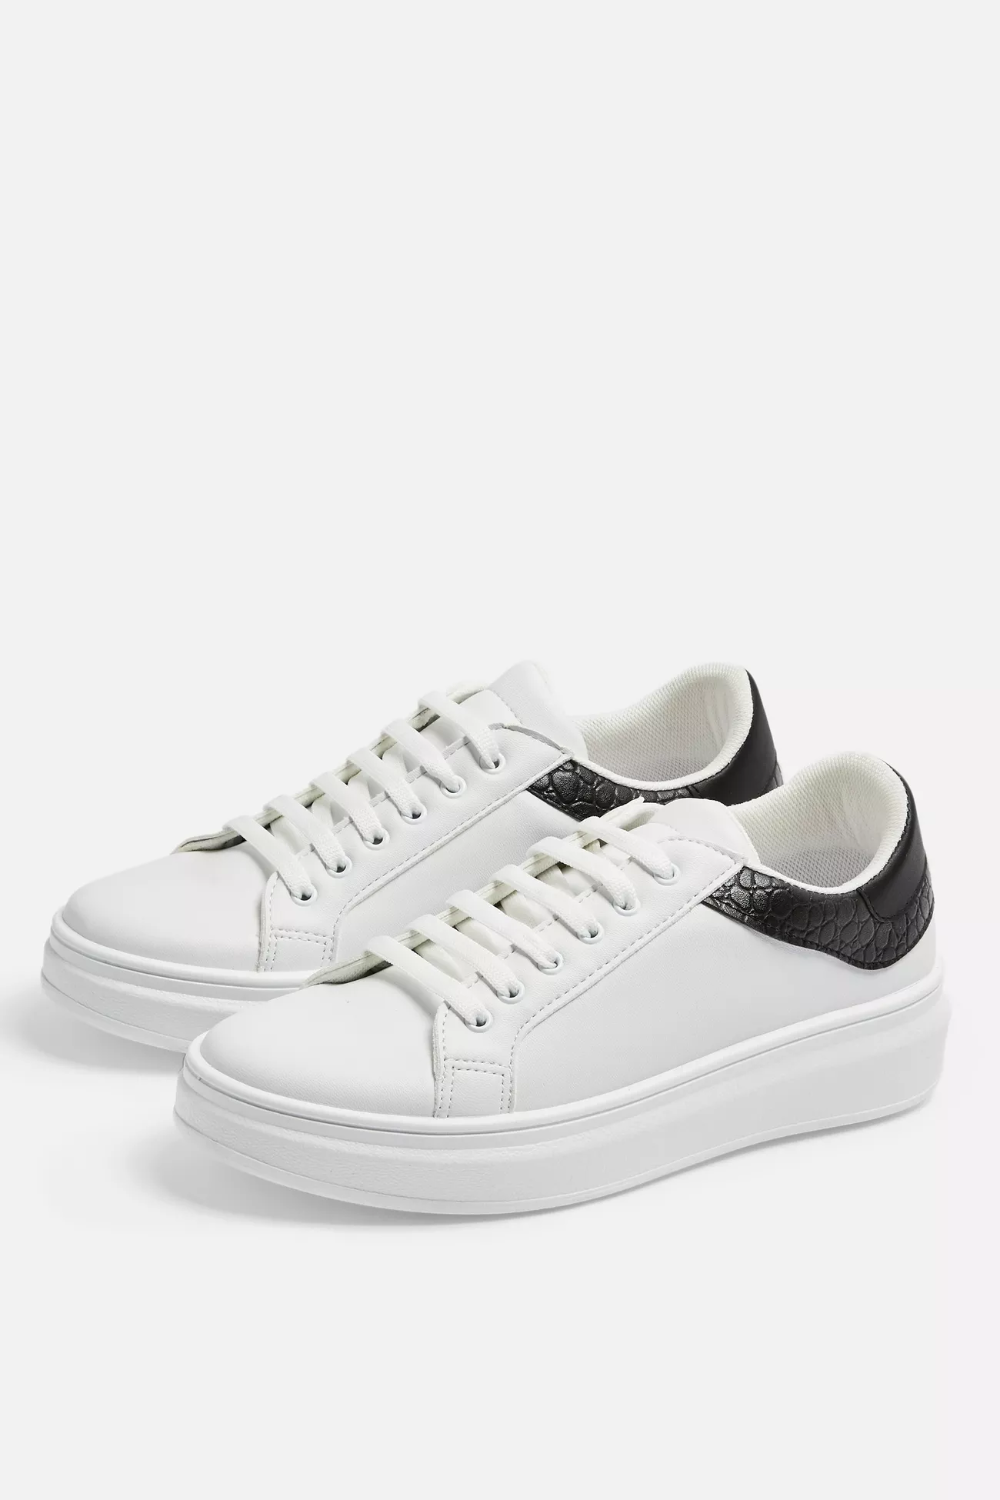 CUBA Black and White Lace Up Sneakers